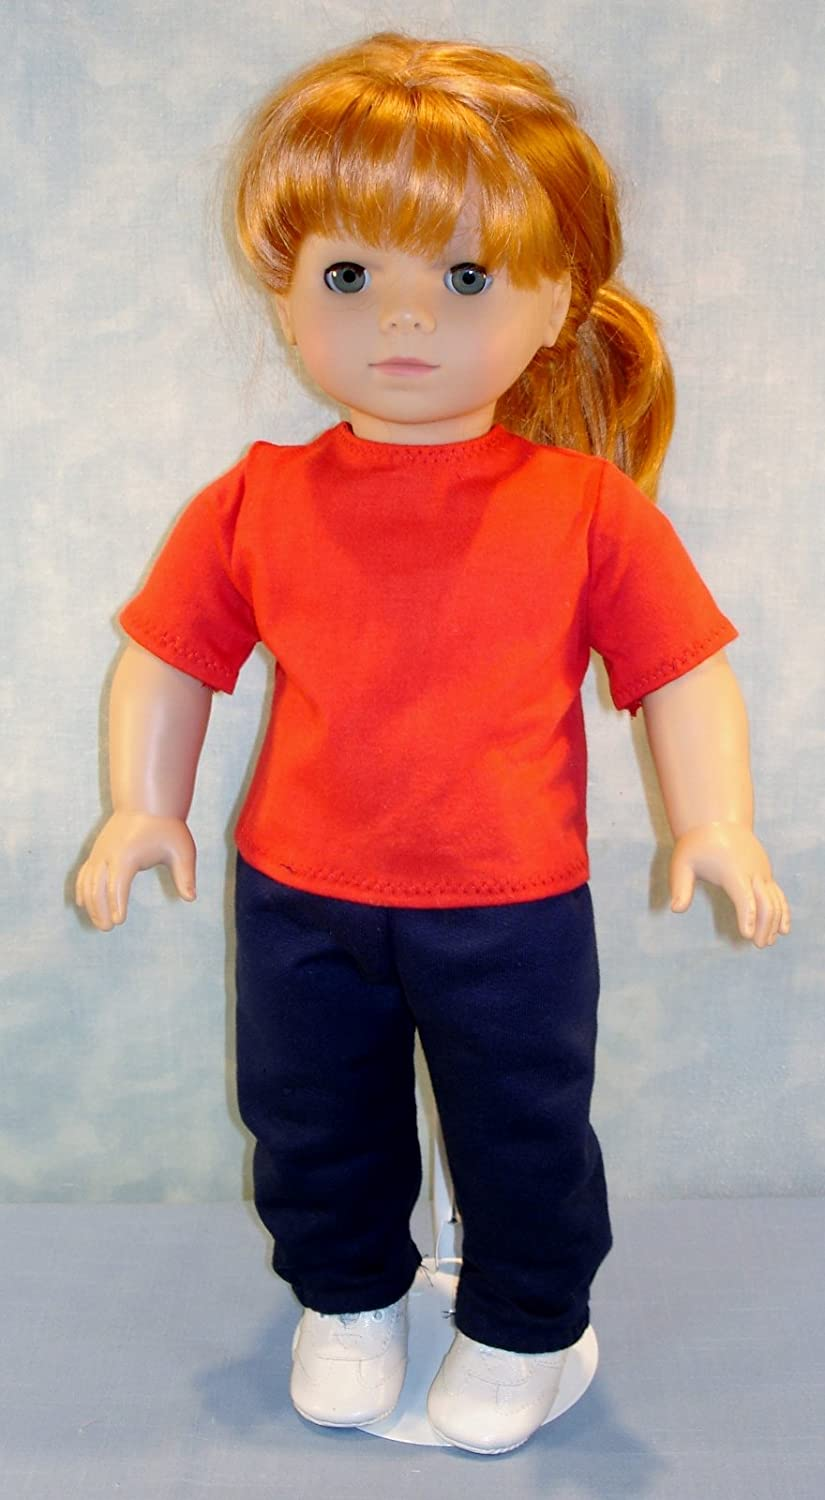 18 Inch Doll Clothes - Red T Shirt handmade by Jane Ellen to fit 18 inch dolls